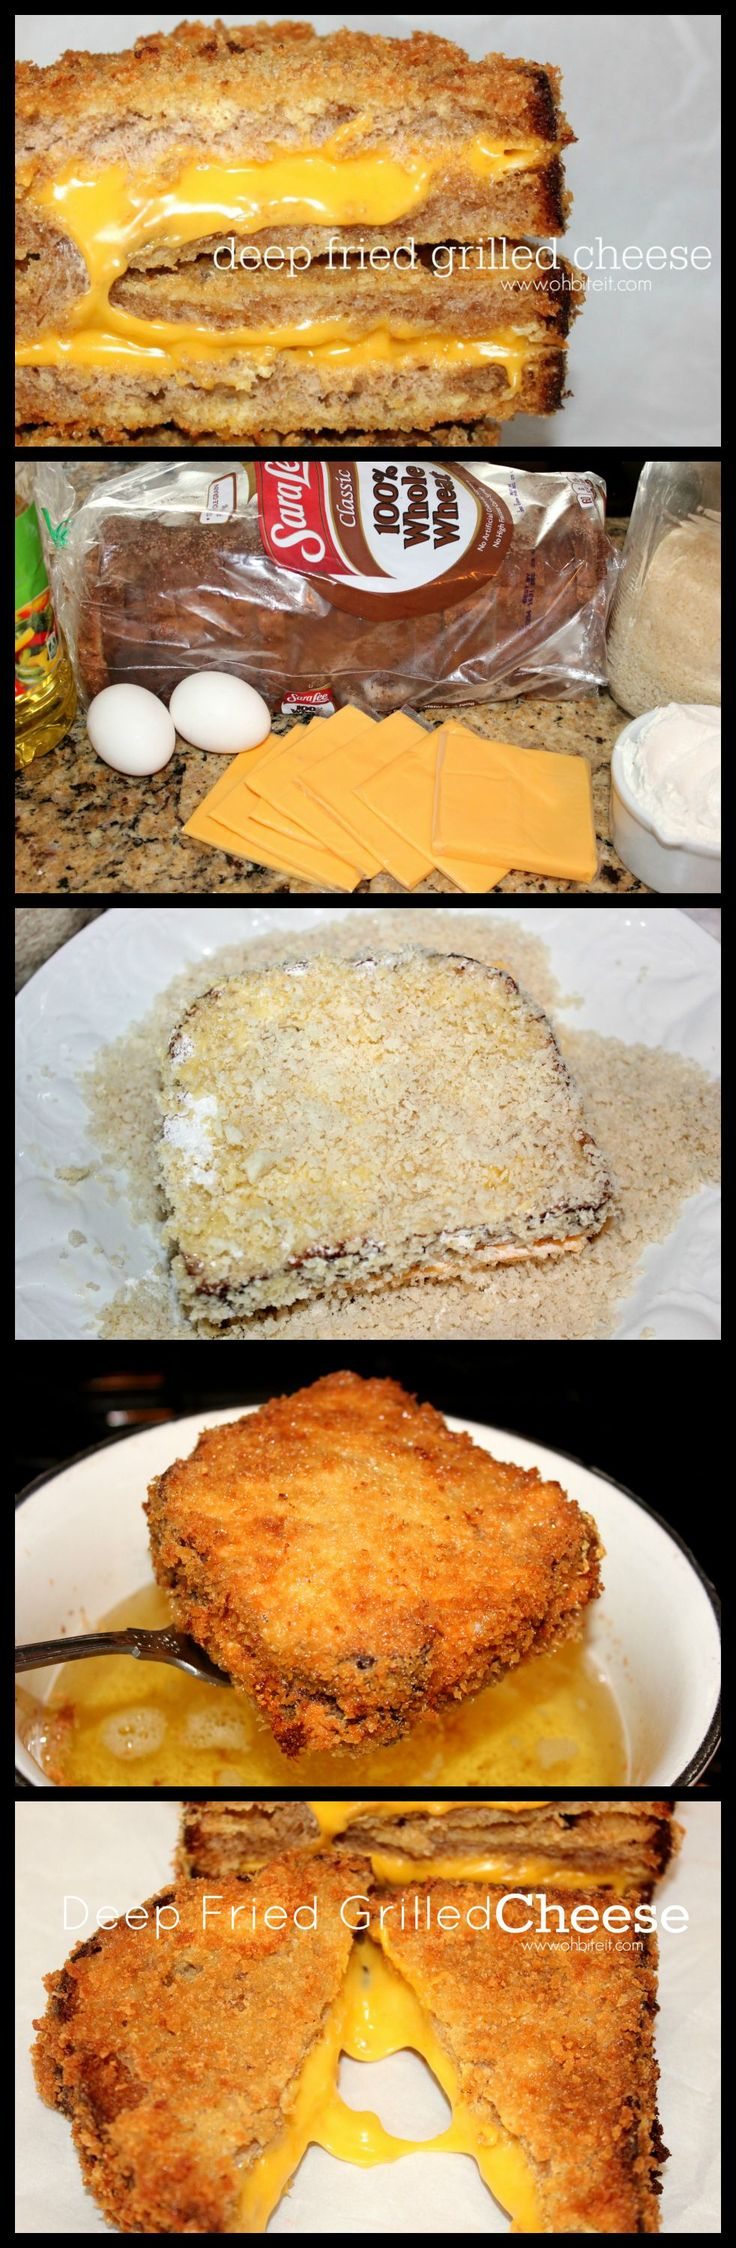 ~Deep Fried Grilled Cheese!